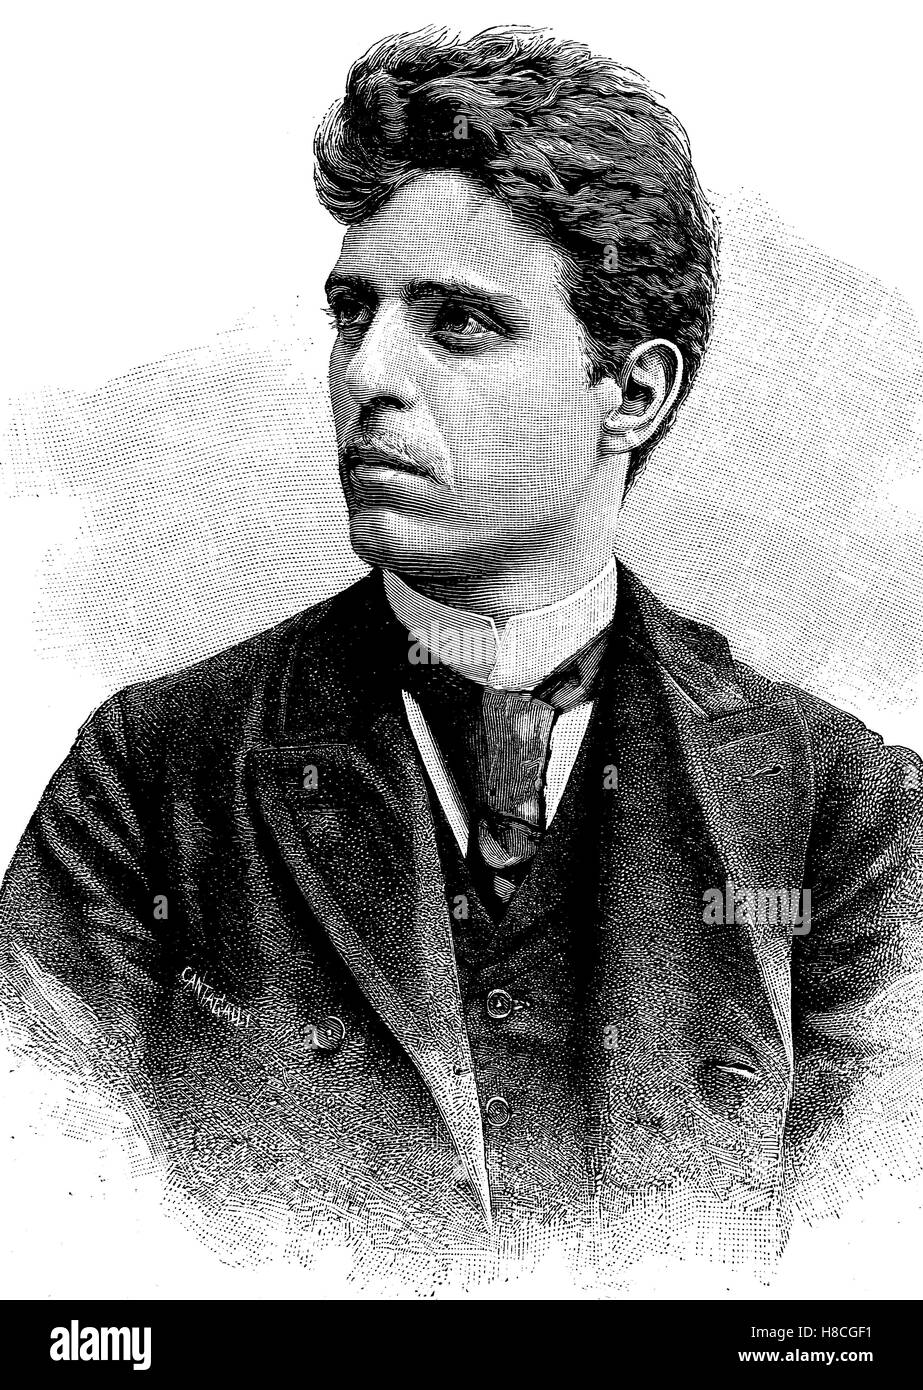 Pietro Antonio Stefano Mascagni; 7 December 1863 - 2 August 1945, was an Italian composer most noted for his operas, - Stock Image